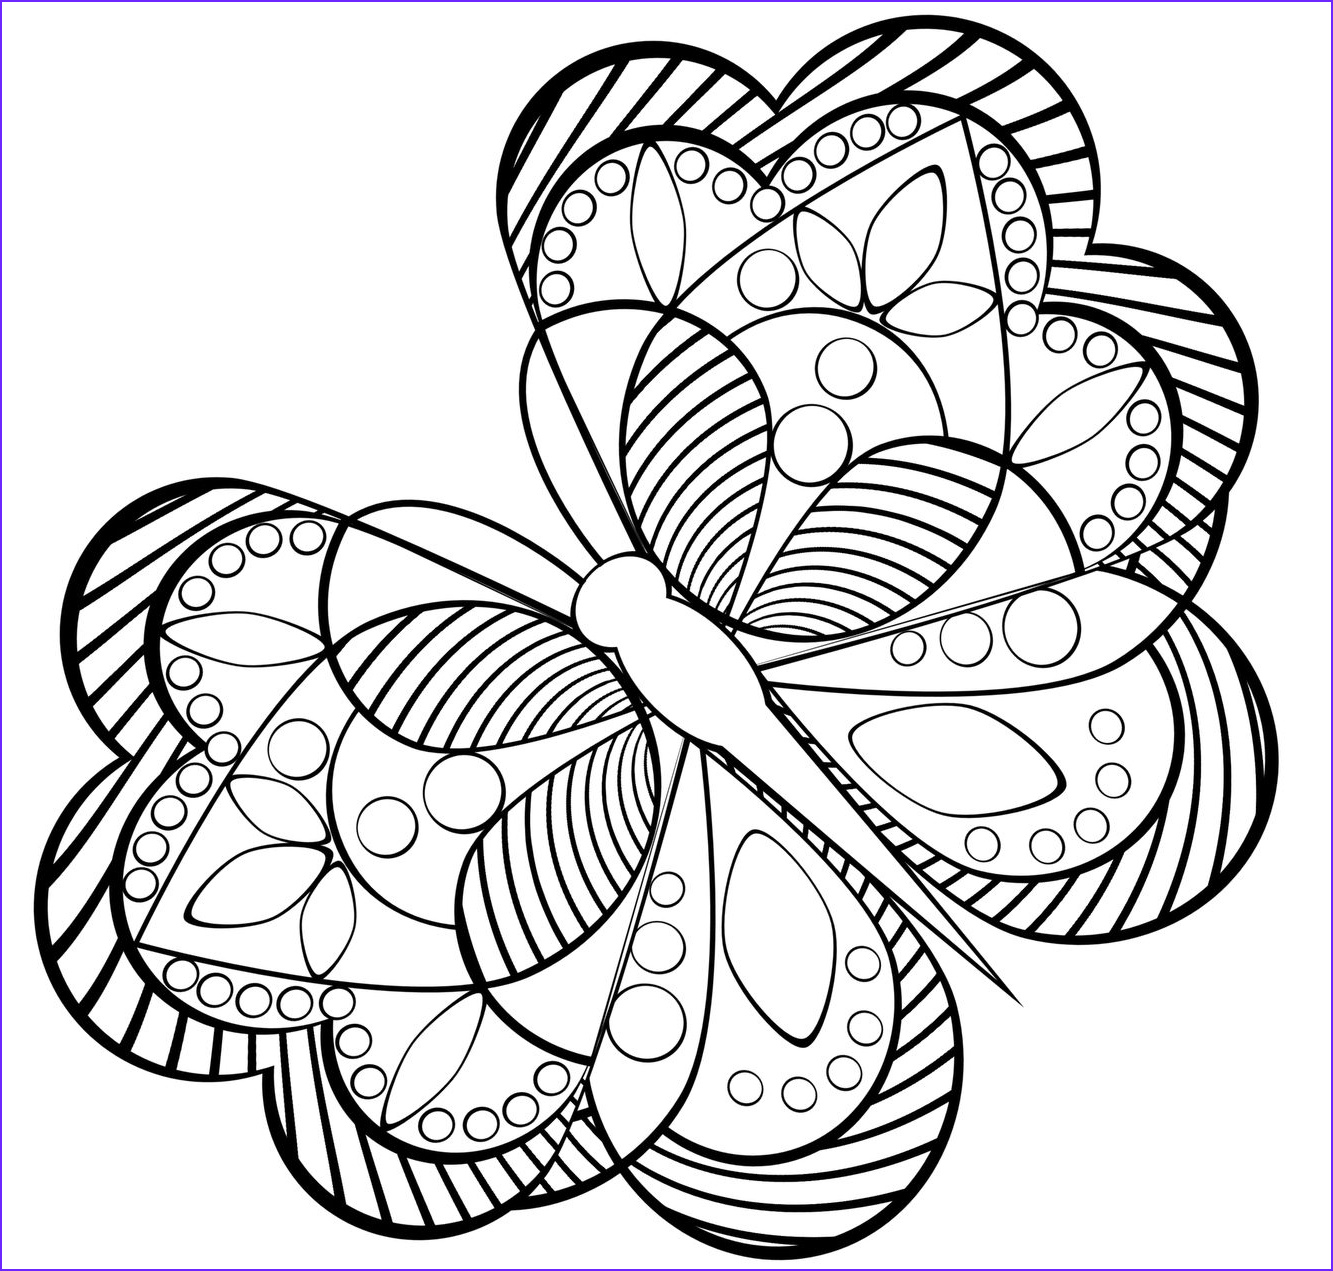 52 free printable advanced coloring pages advanced skill